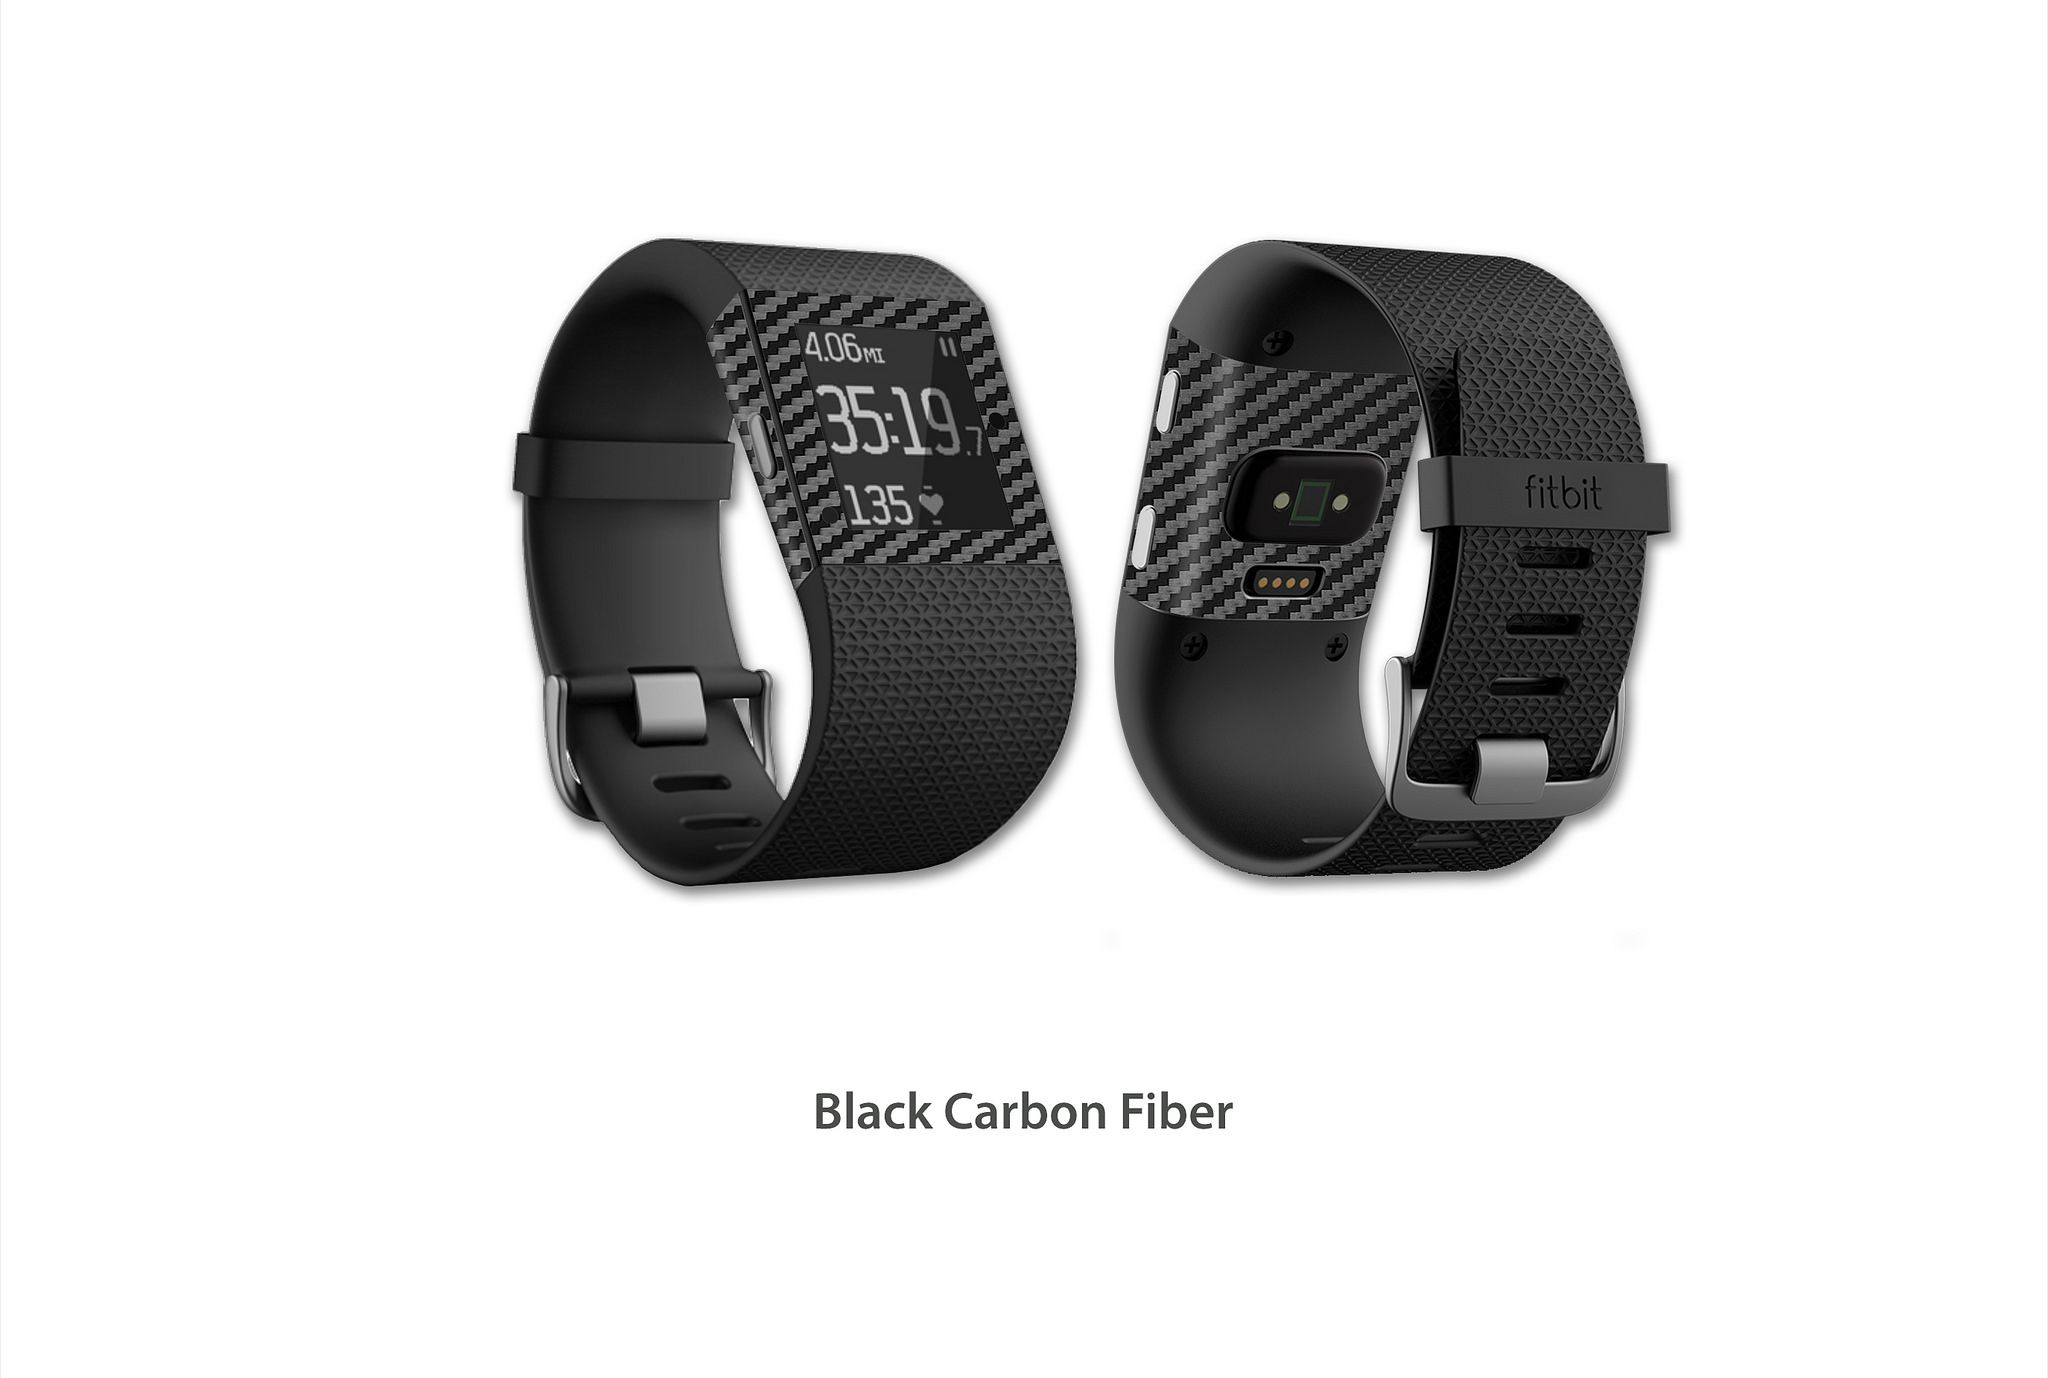 https://flic.kr/p/z8bLVE | Black Carbon Fiber | Fitbit Surge skin kit series Carbon Fiber! Now available for purchase!!  Click on the link below to make your purchase: www.stickerboy.net/pages/fitbit-surge-skins-skin-series